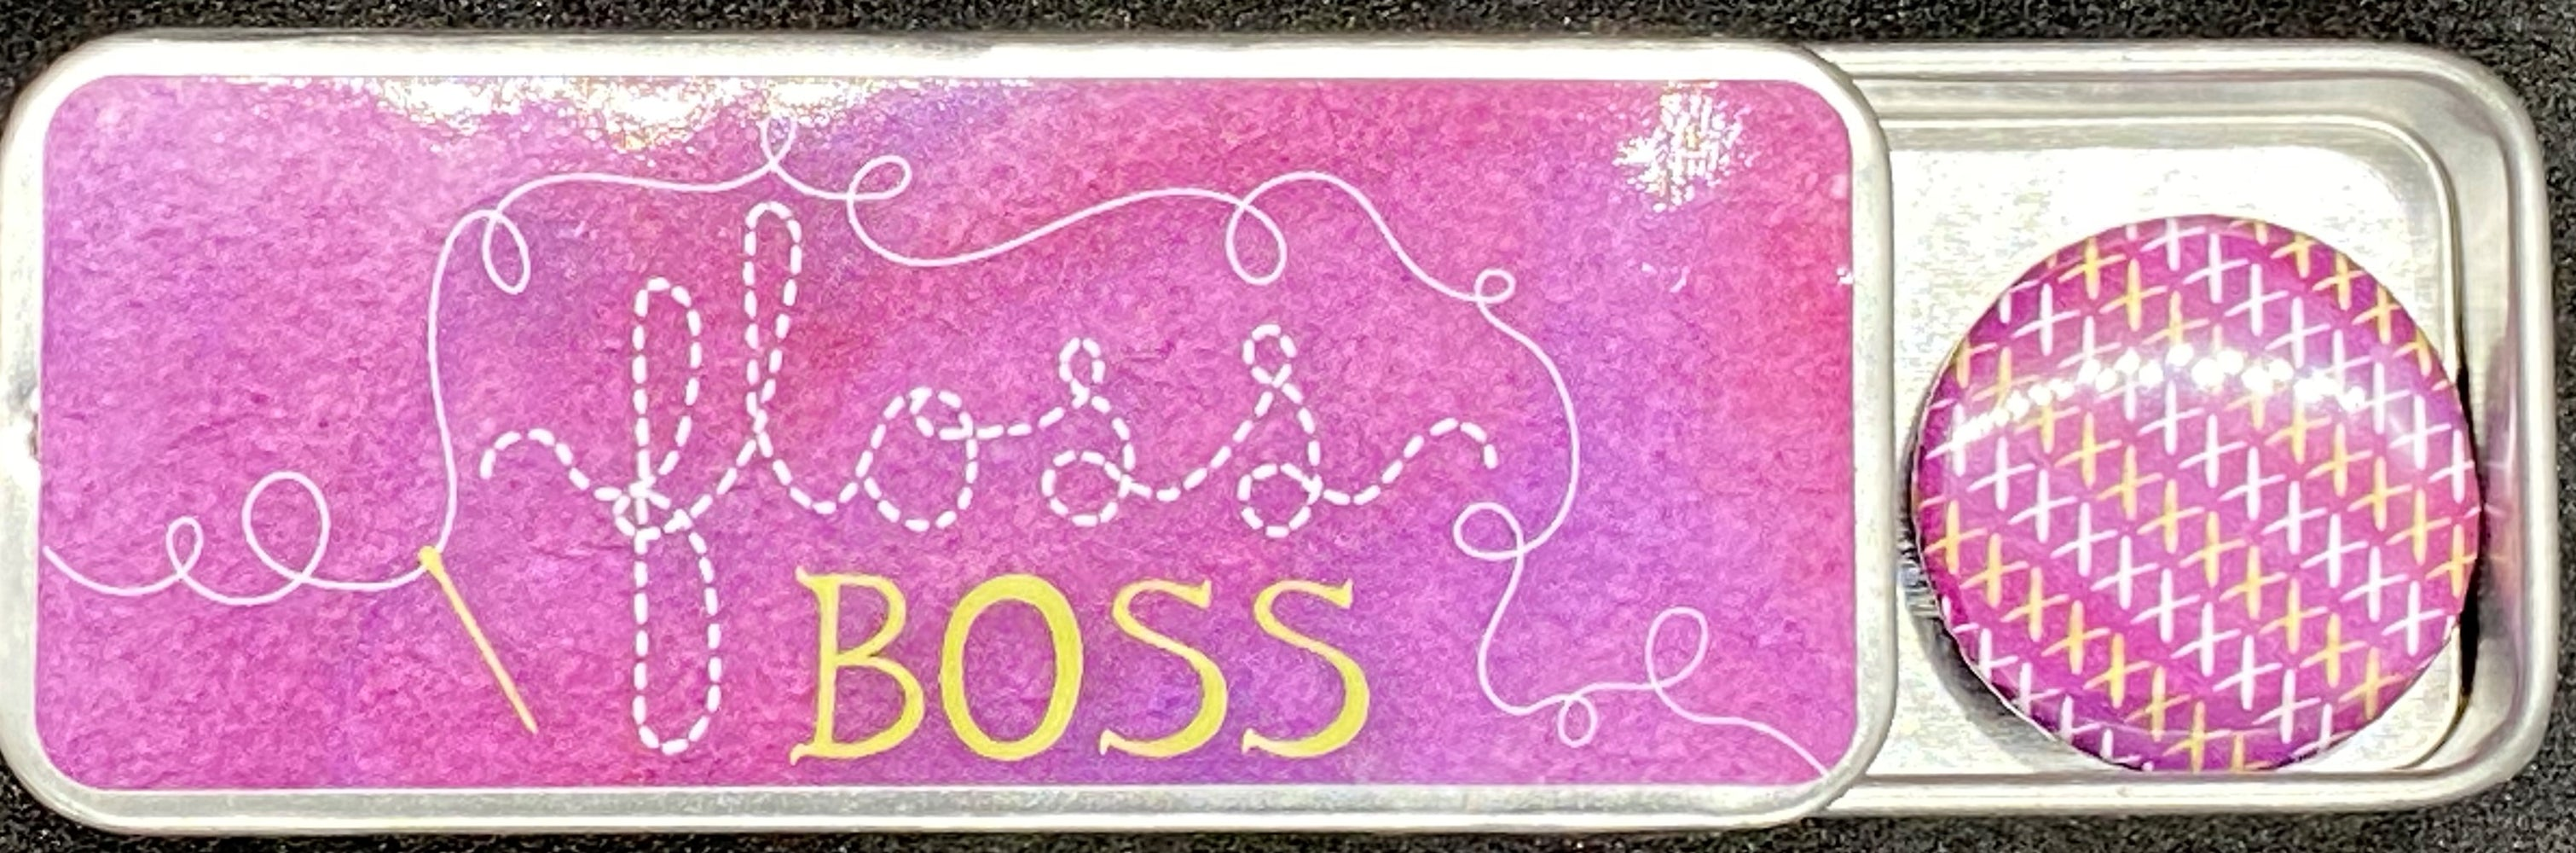 ZD - Needle Tin - Floss Boss